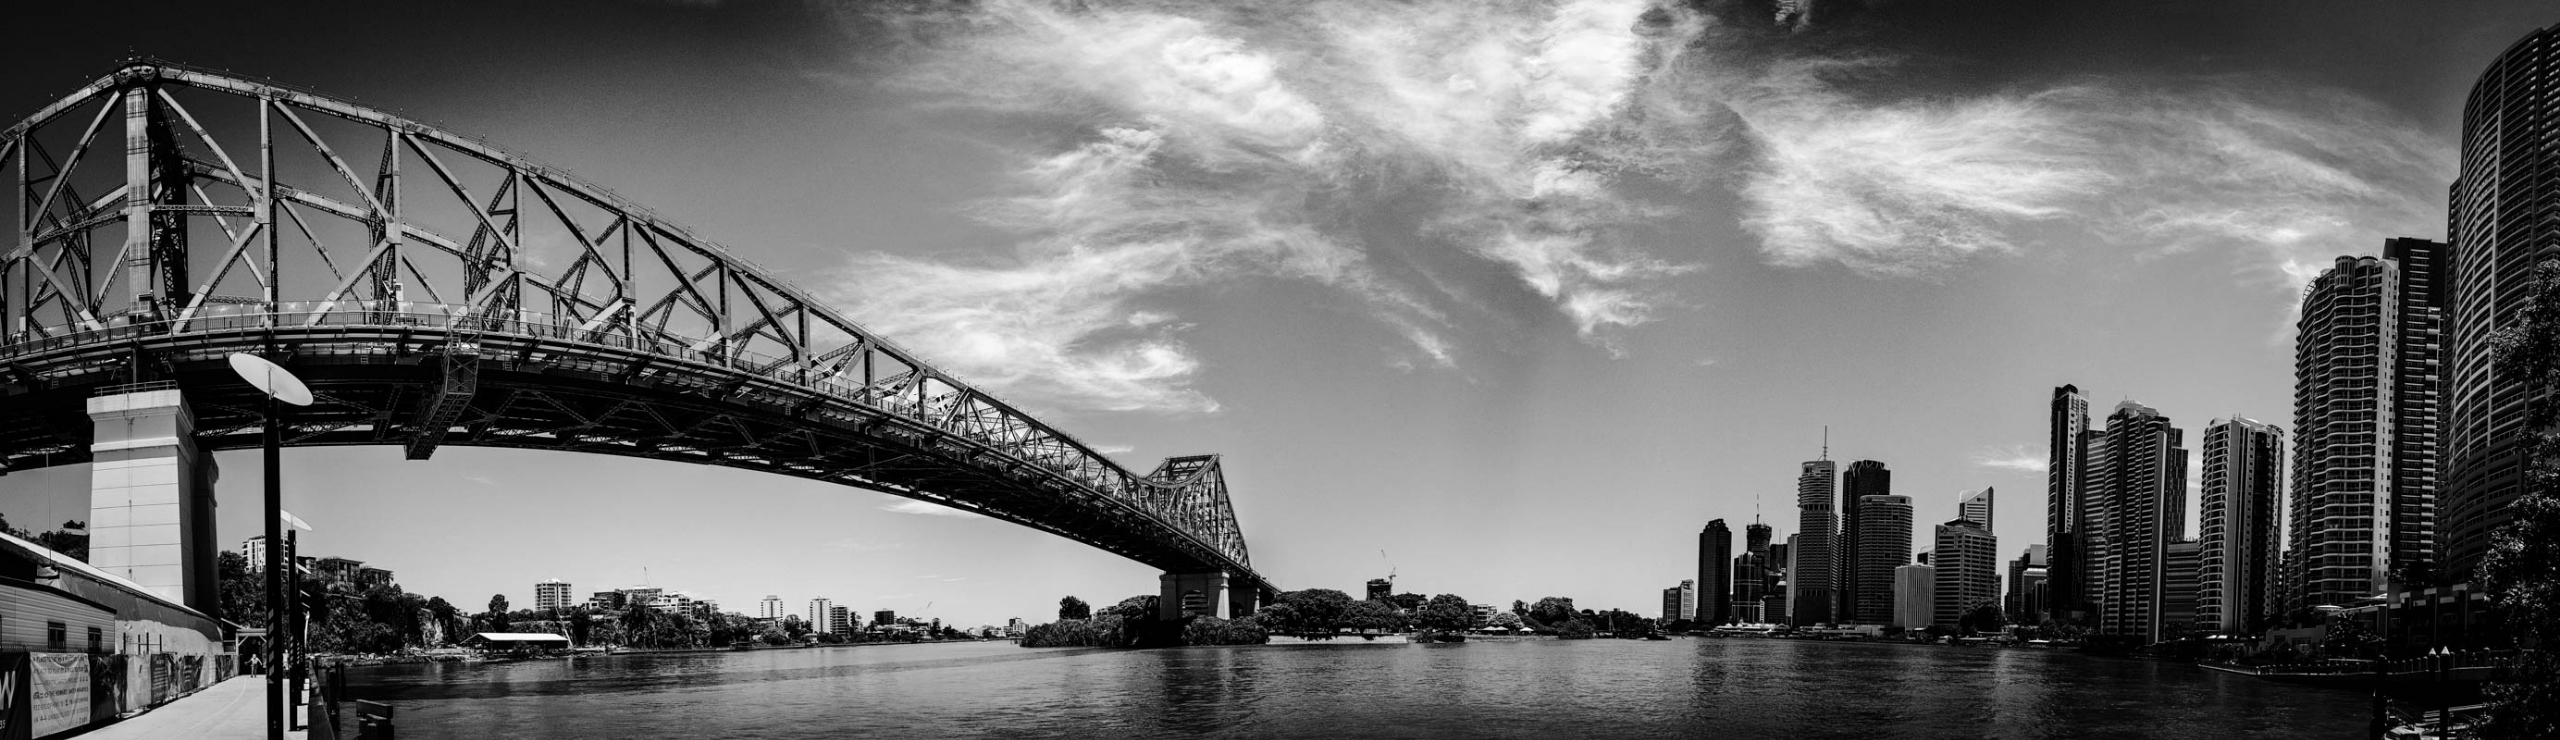 Brisbane CBD River Story Bridge - daphot | ello